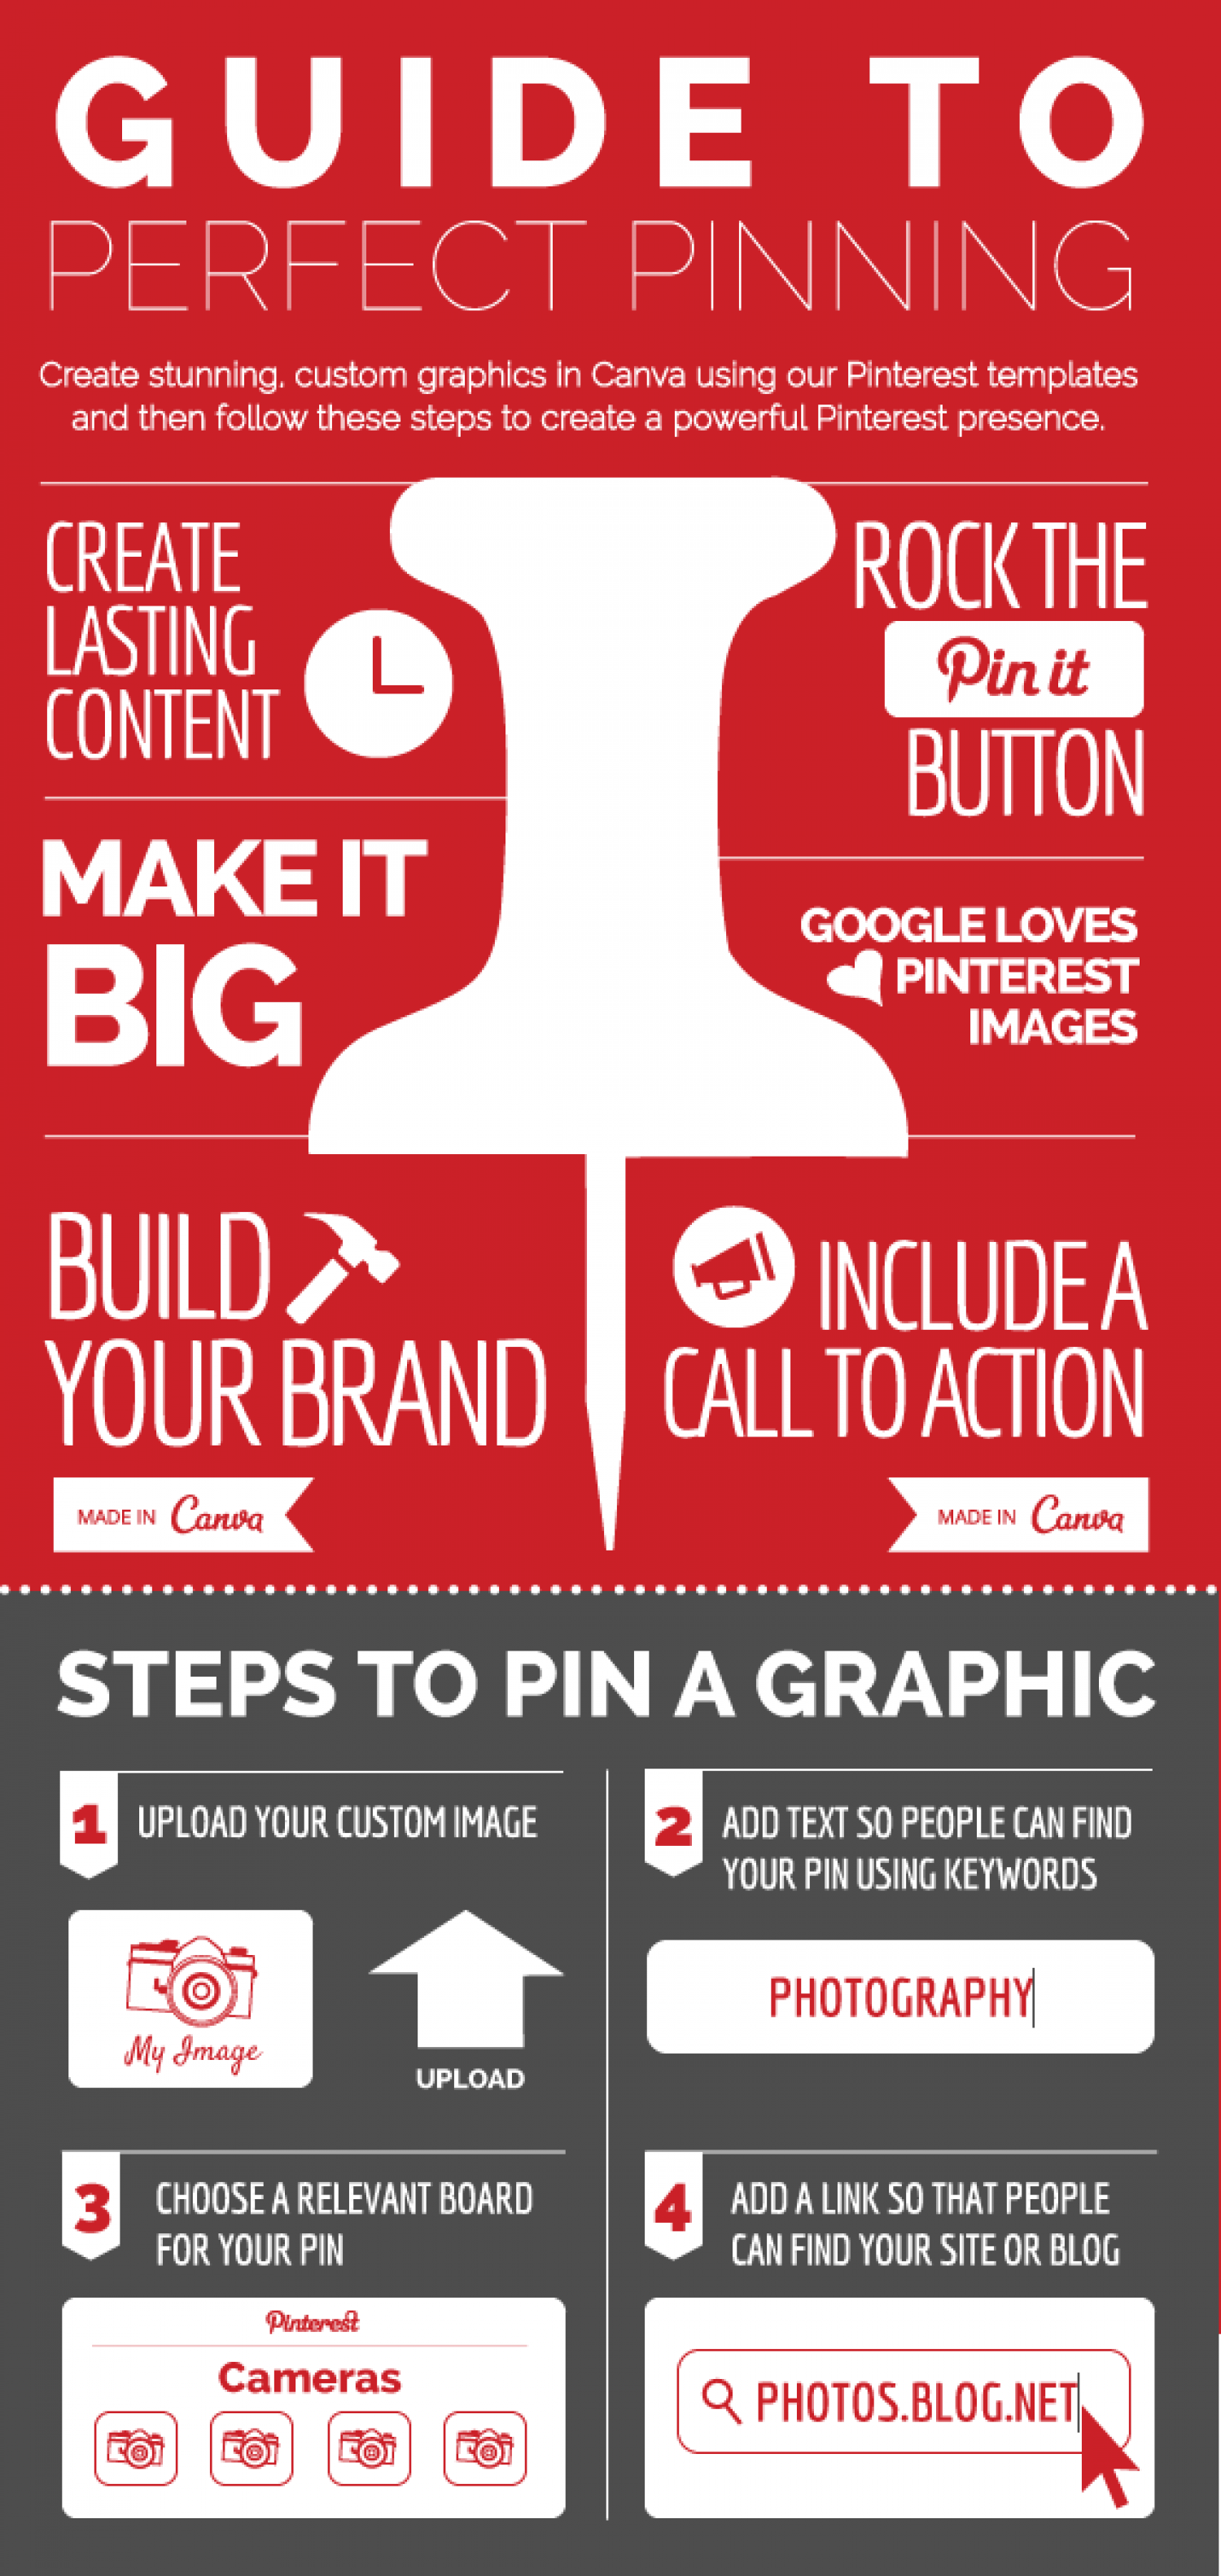 Guide to Perfect Pinning Infographic